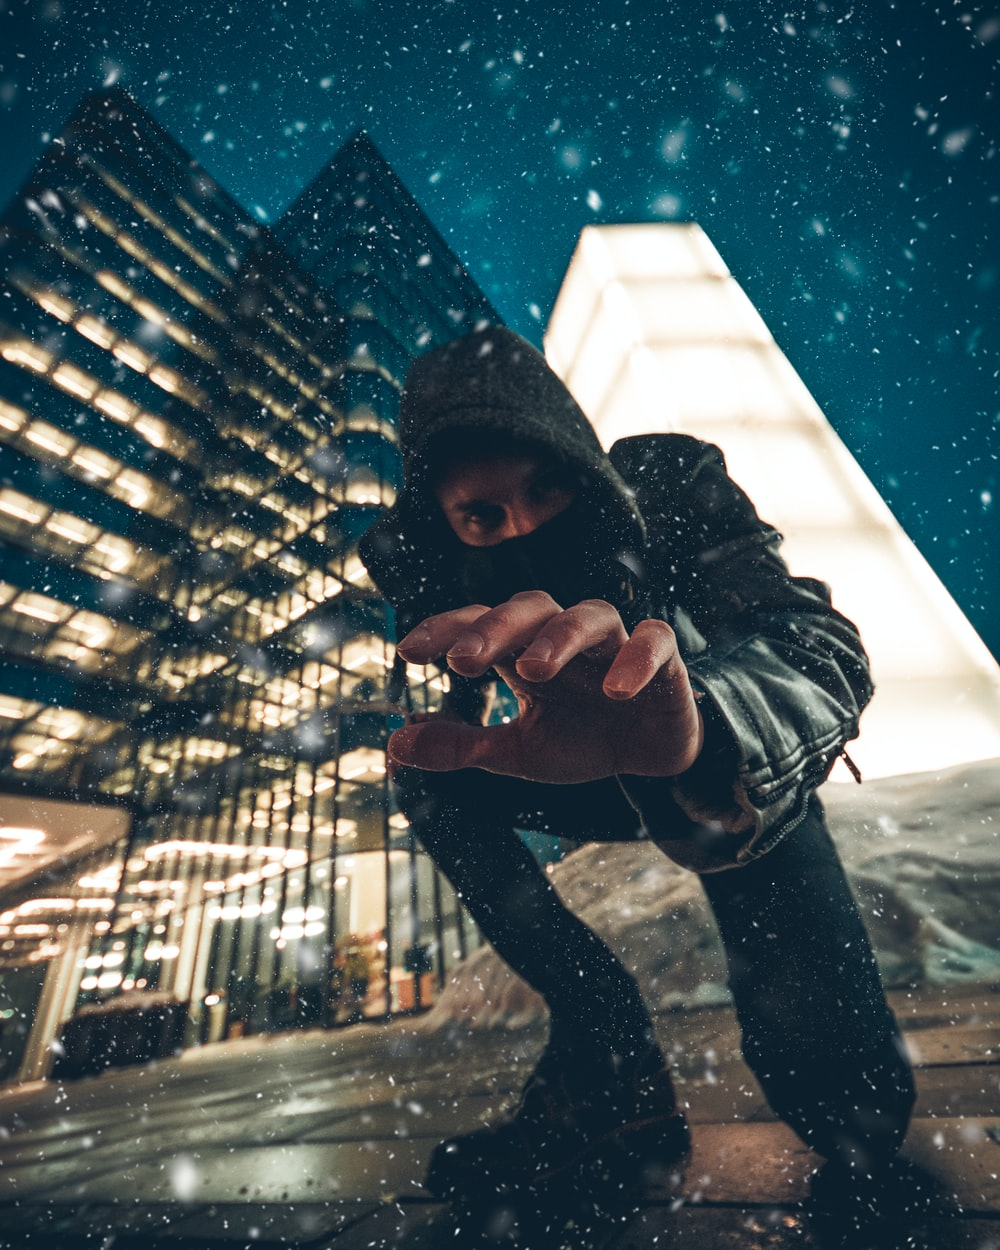 close-up photography of man kneeling on ground front of gray high-rise building during snow weather